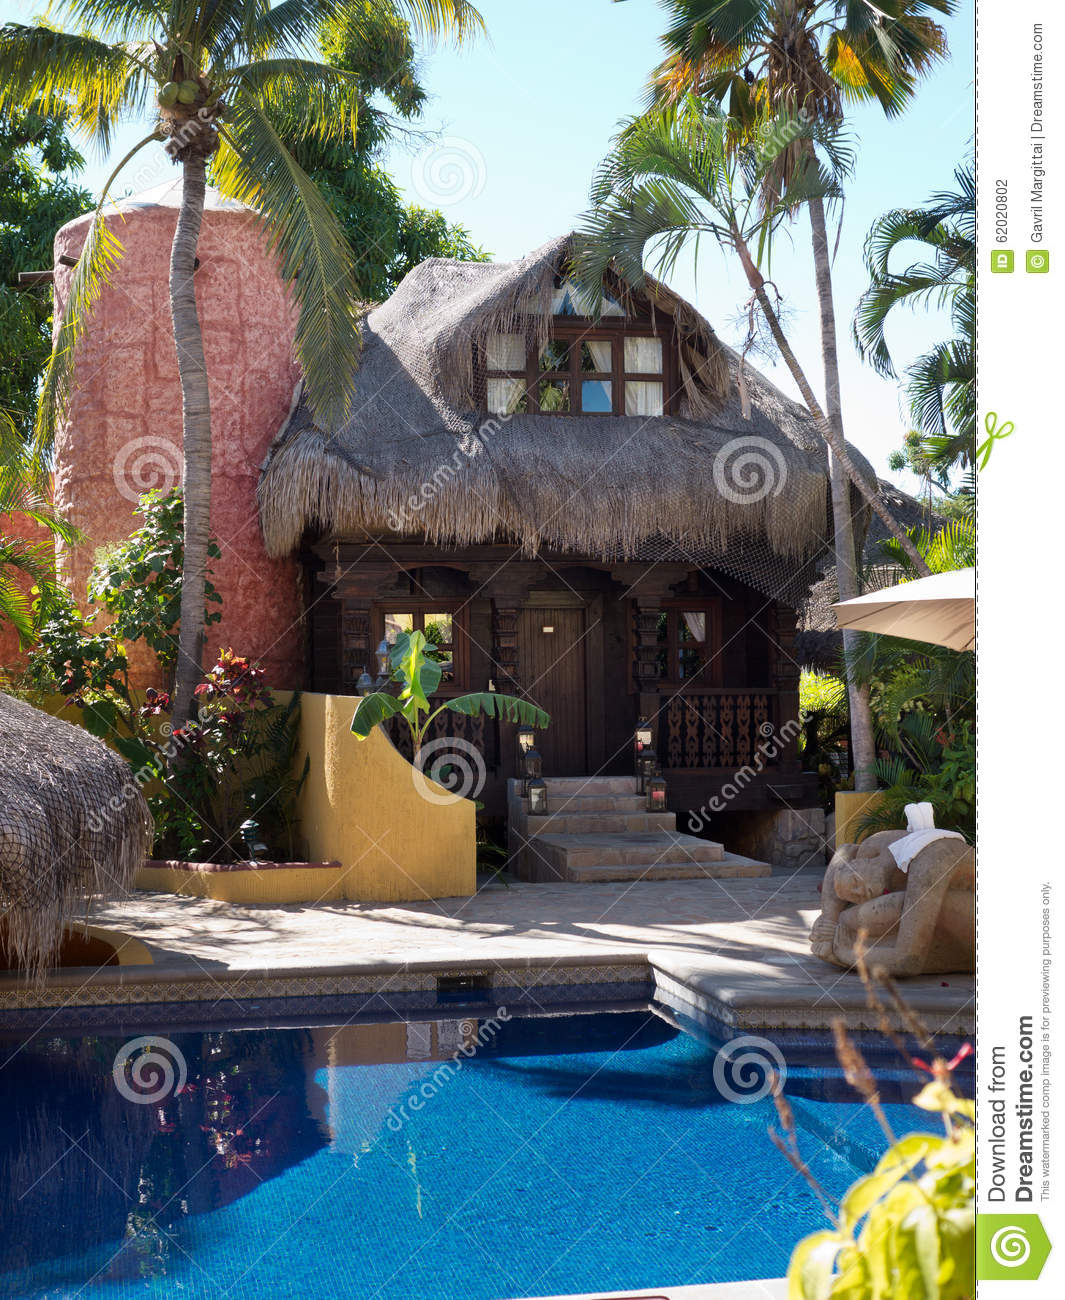 luxury palapa roof bungalow near pool stock photo image 62020802